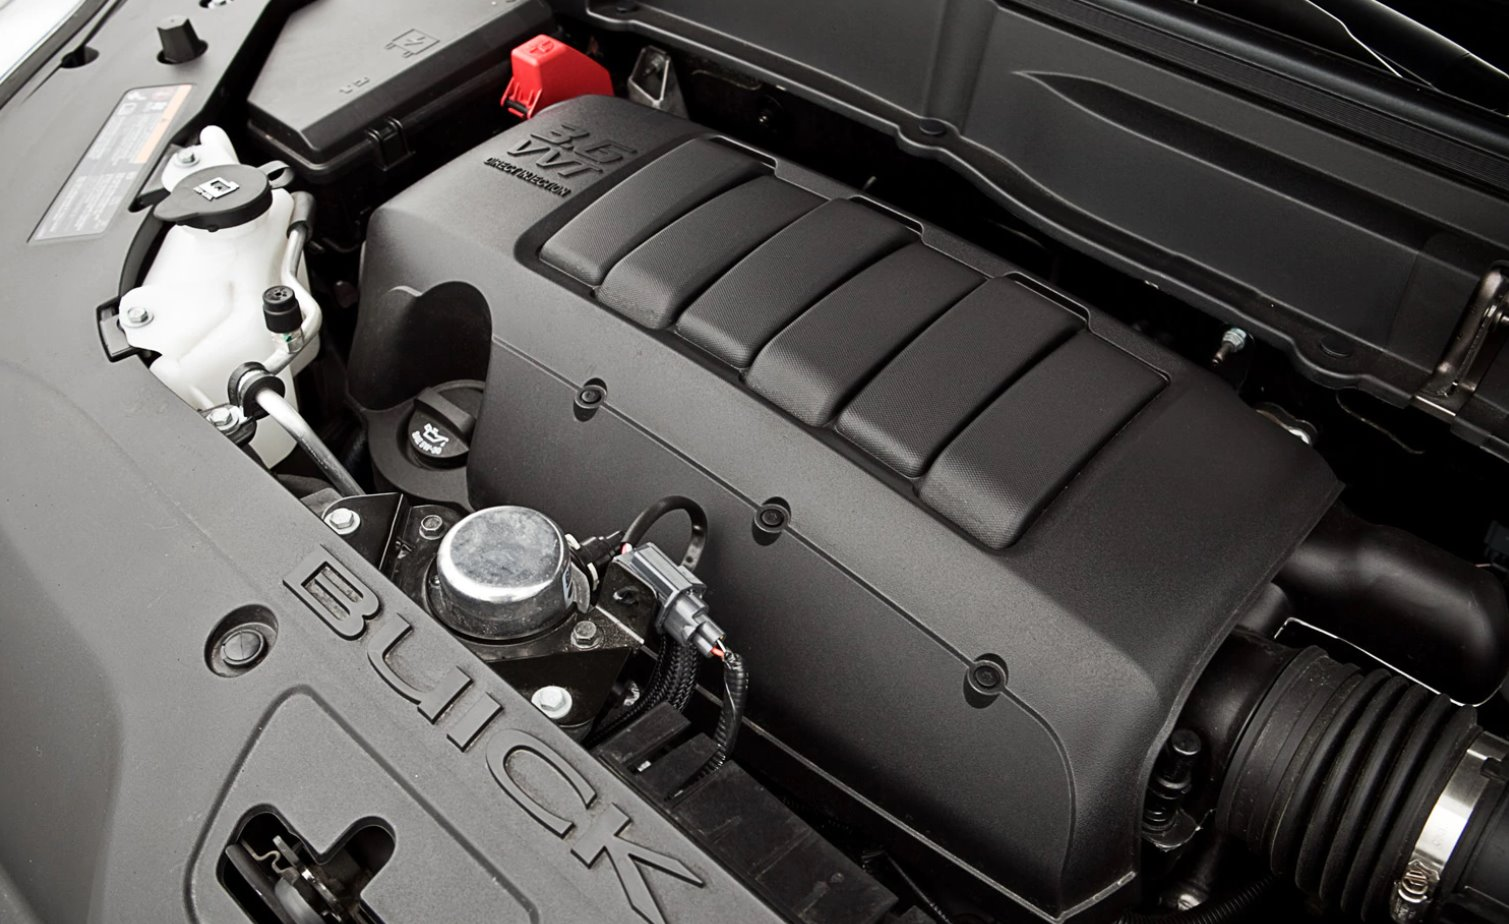 New 2022 Buick Enclave Engine